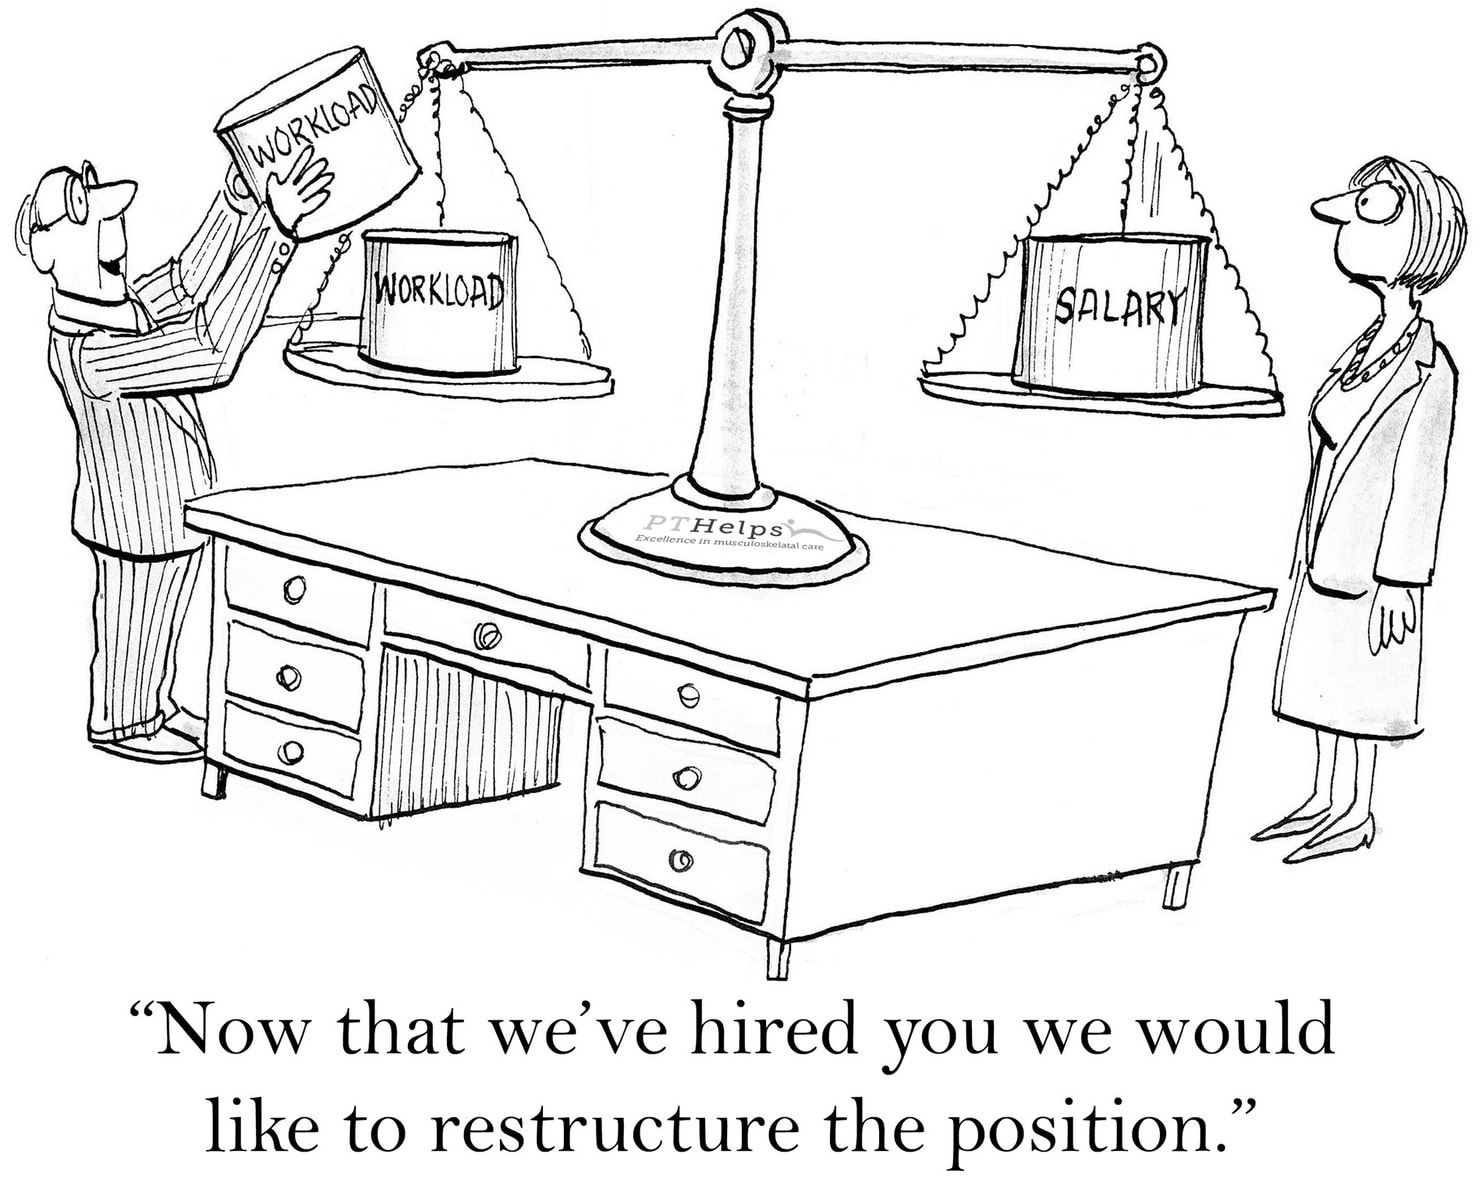 Image - Physical Therapy Employment Workplace Cartoon